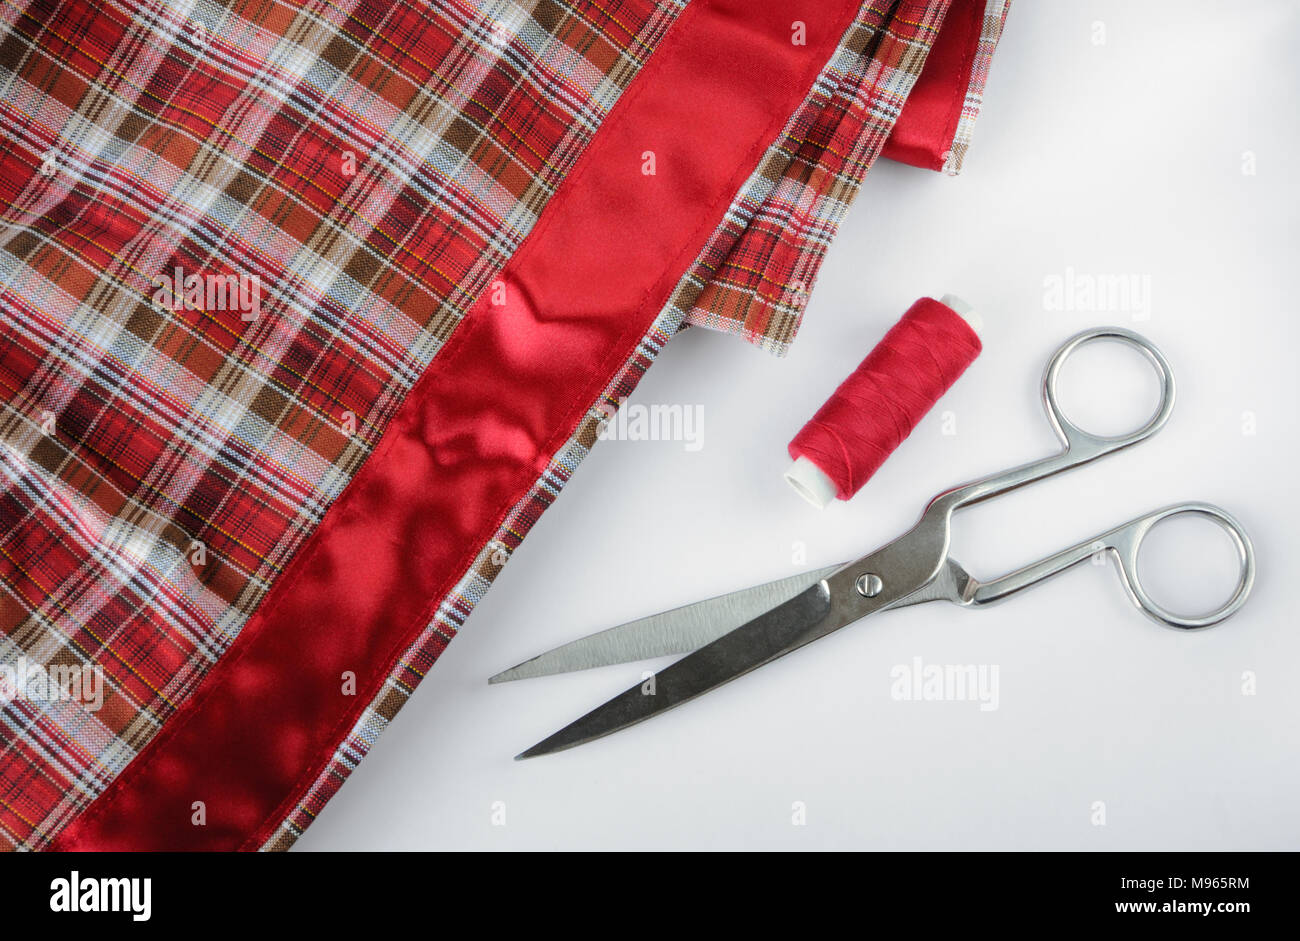 Accessory of the tailor on white background - Stock Image